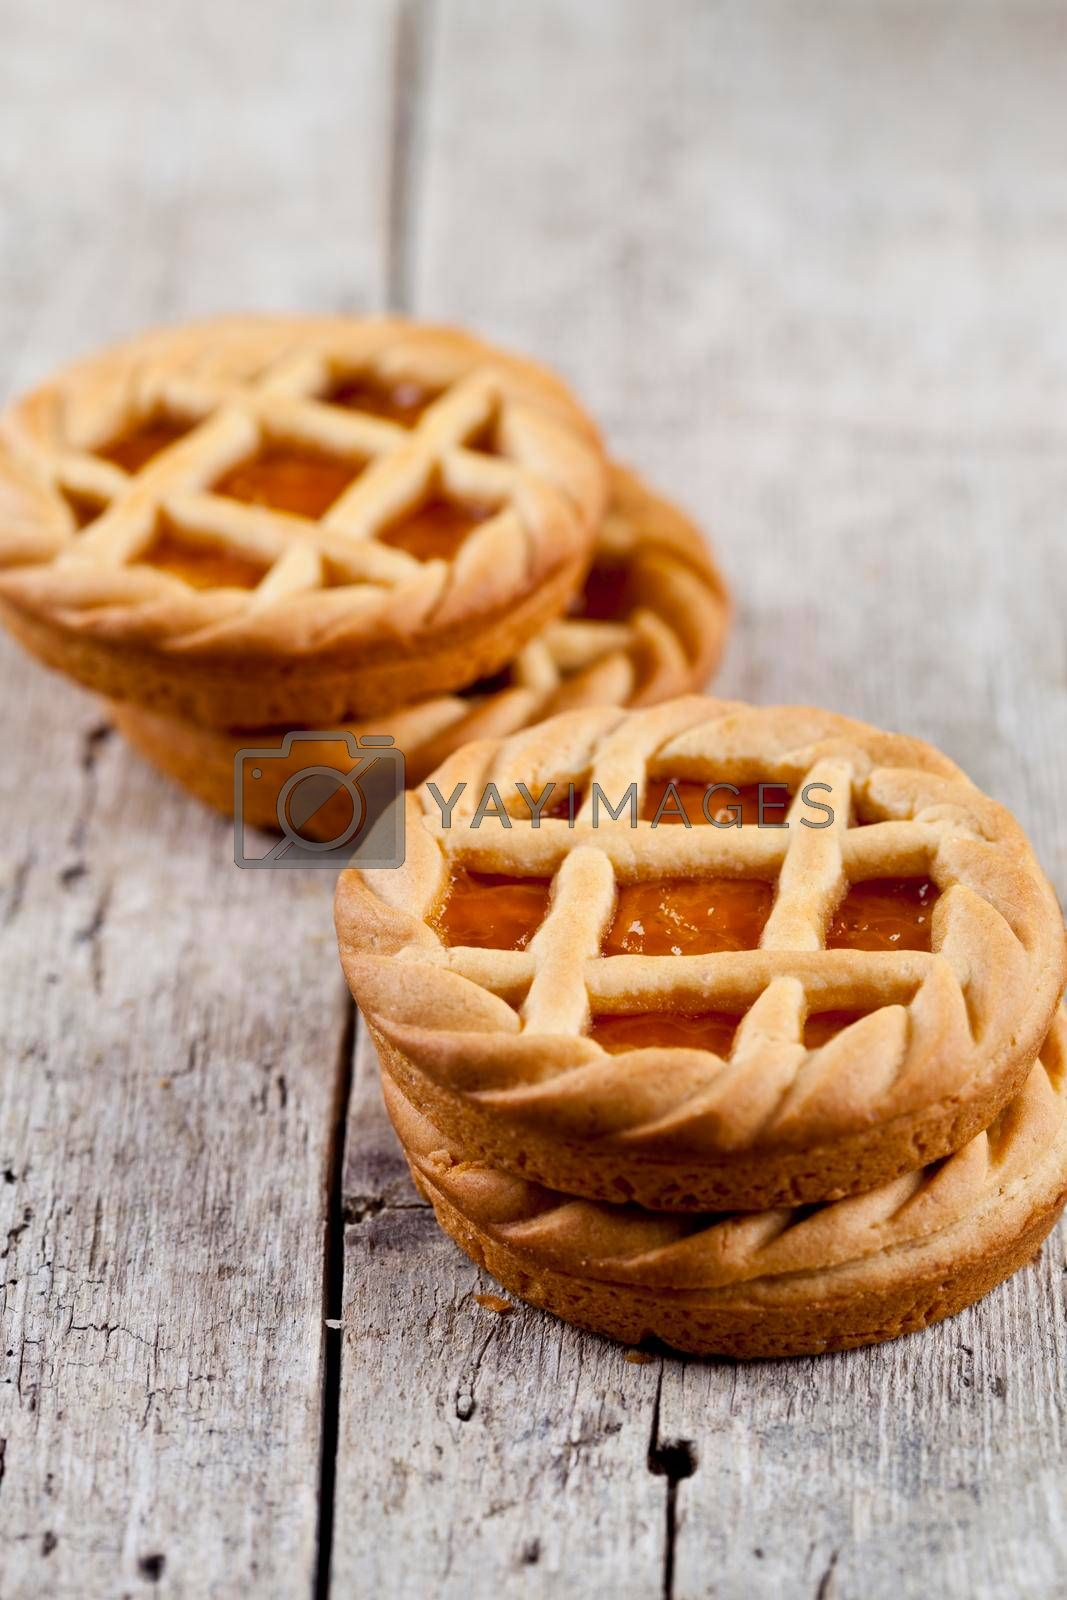 Fresh baked tarts with marmalade or apricot jam filling on on rustic wooden table background.